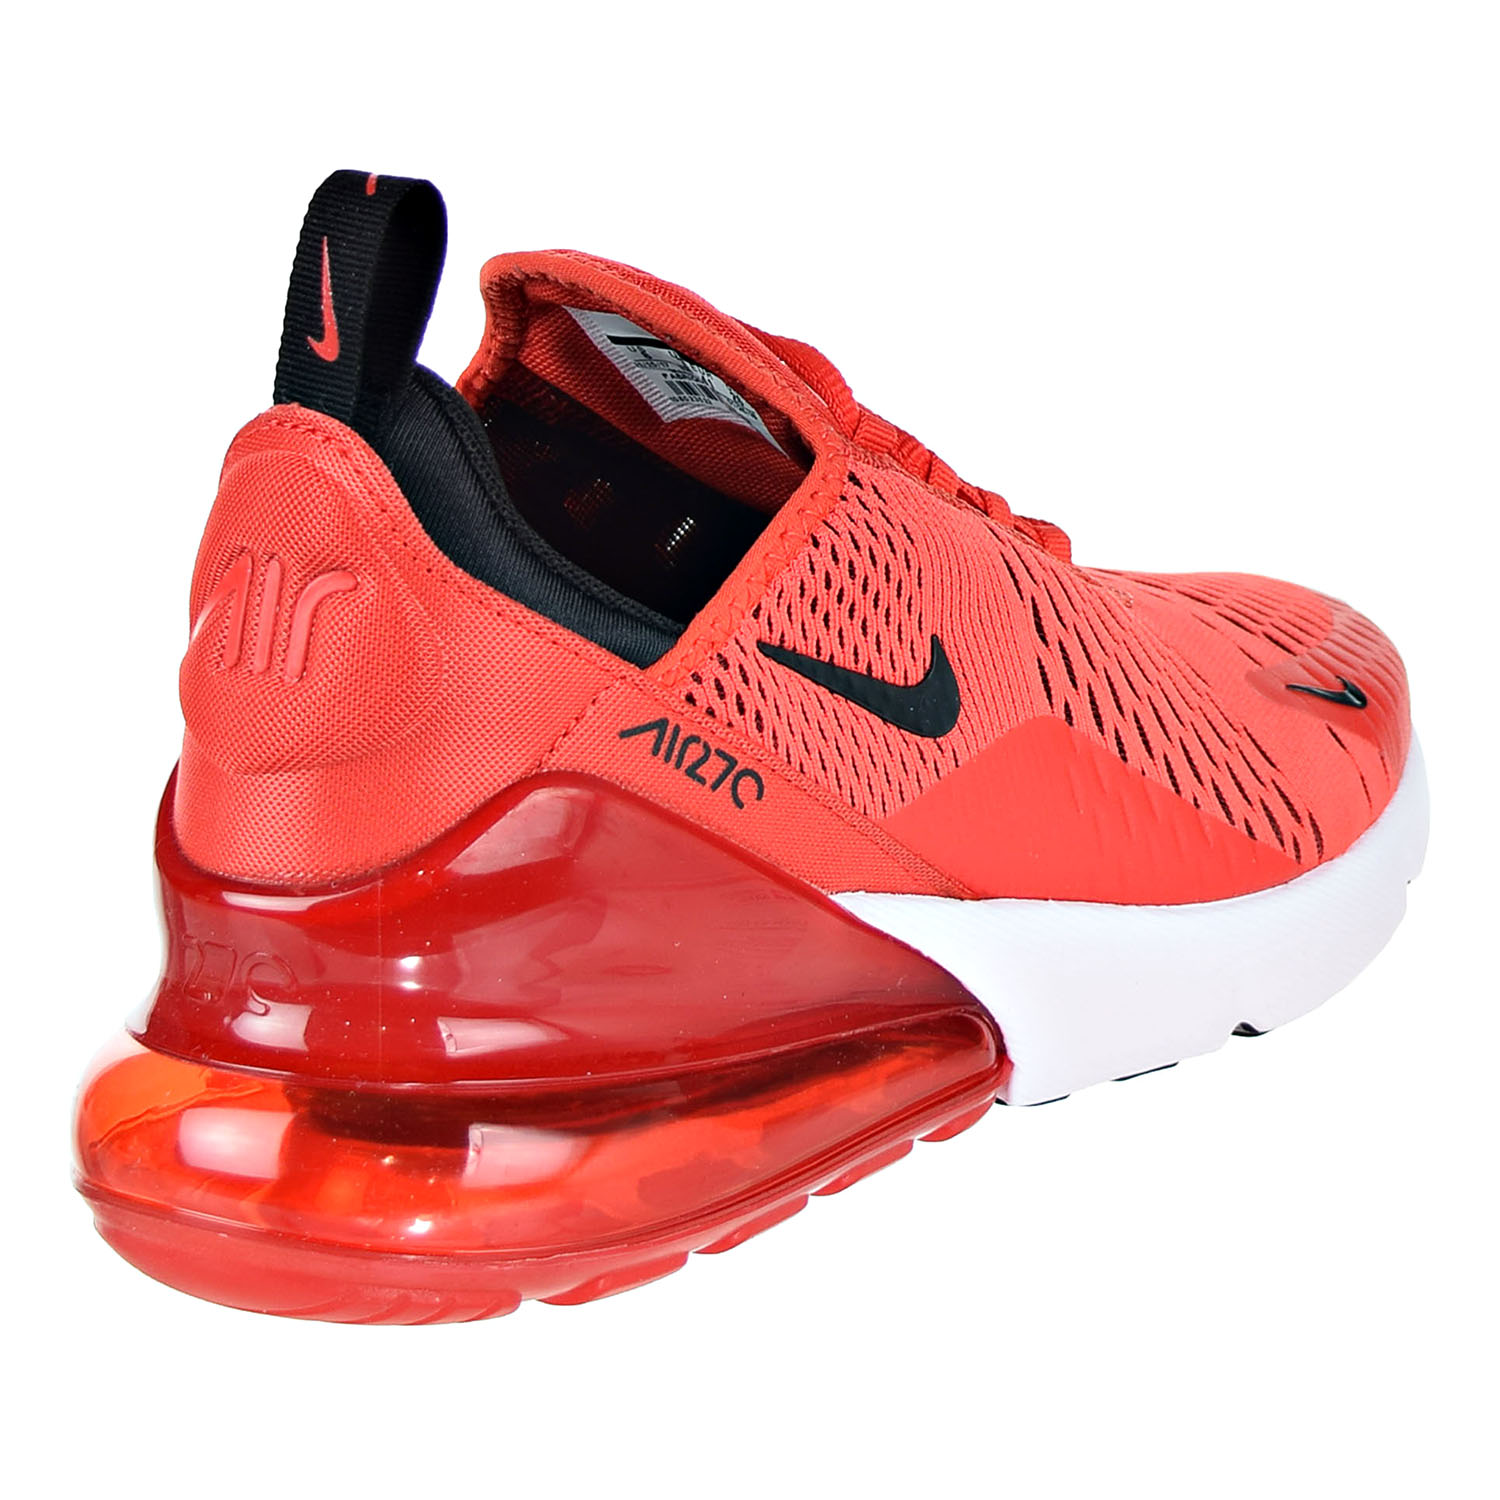 Nike Air Max 270 Men S Shoes Habanero Red Black White Ah8050 601 9 D M Us